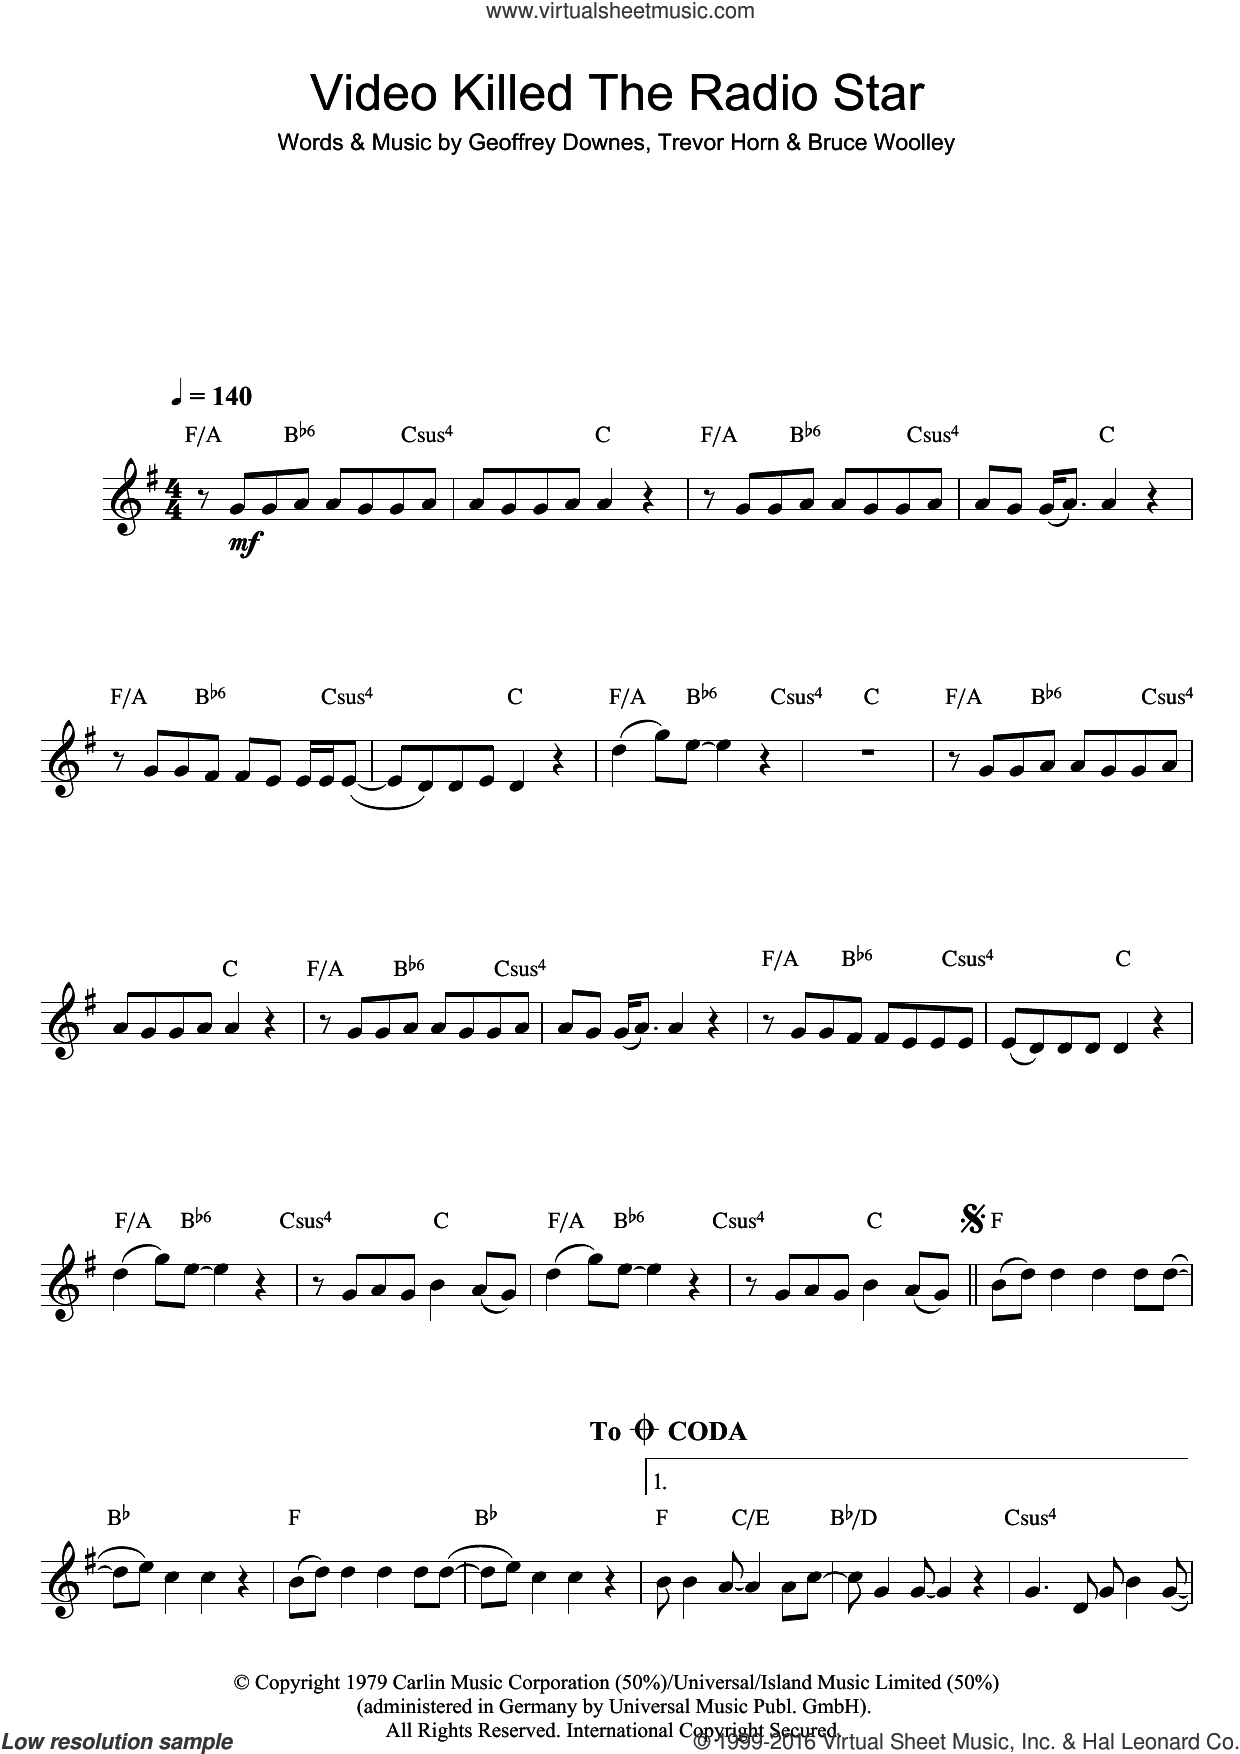 Video Killed The Radio Star sheet music for clarinet solo by Buggles, Bruce Woolley, Geoff Downes and Trevor Horn, intermediate skill level